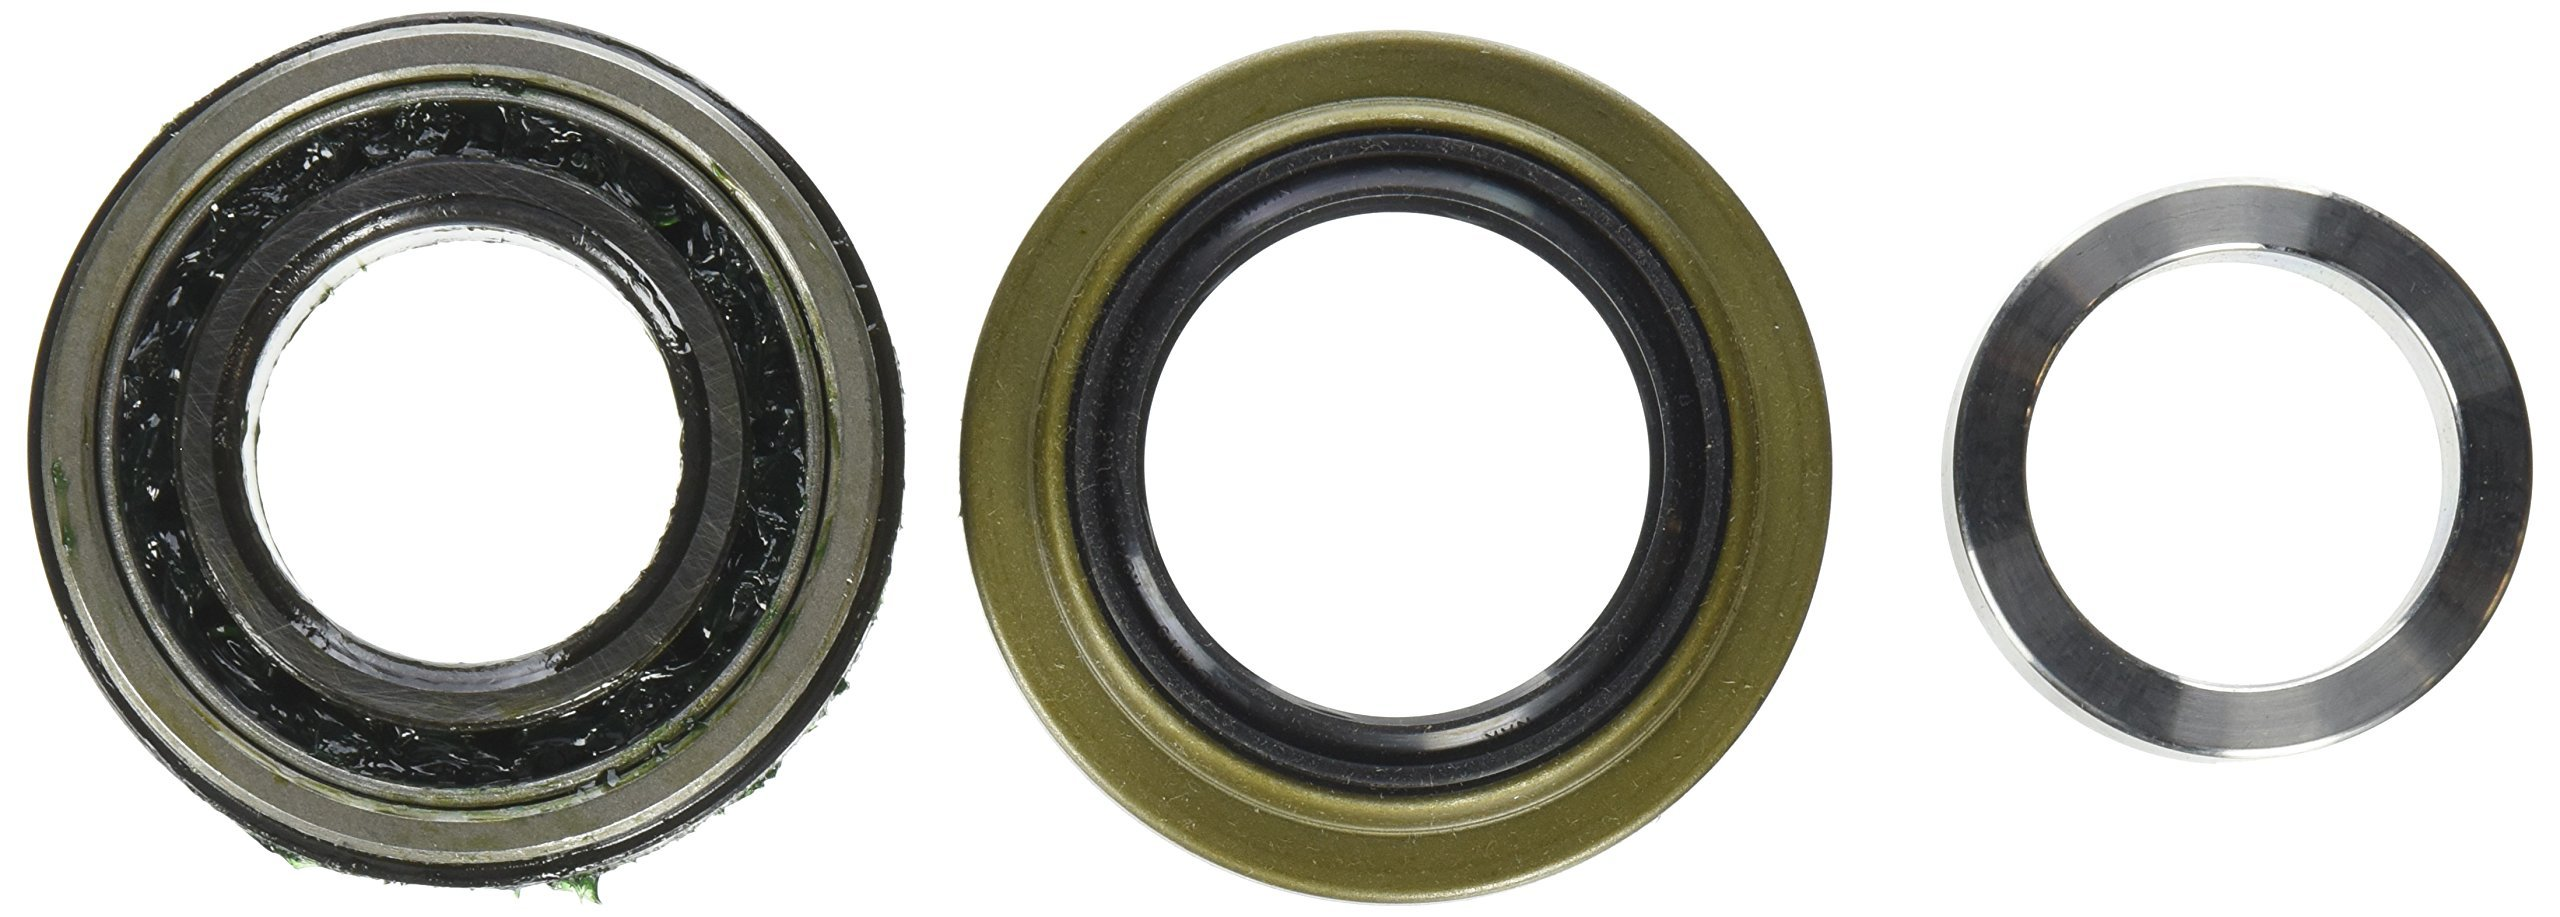 Strange Engineering A1013 Tapered Axle Bearing with Seal by Strange Engineering